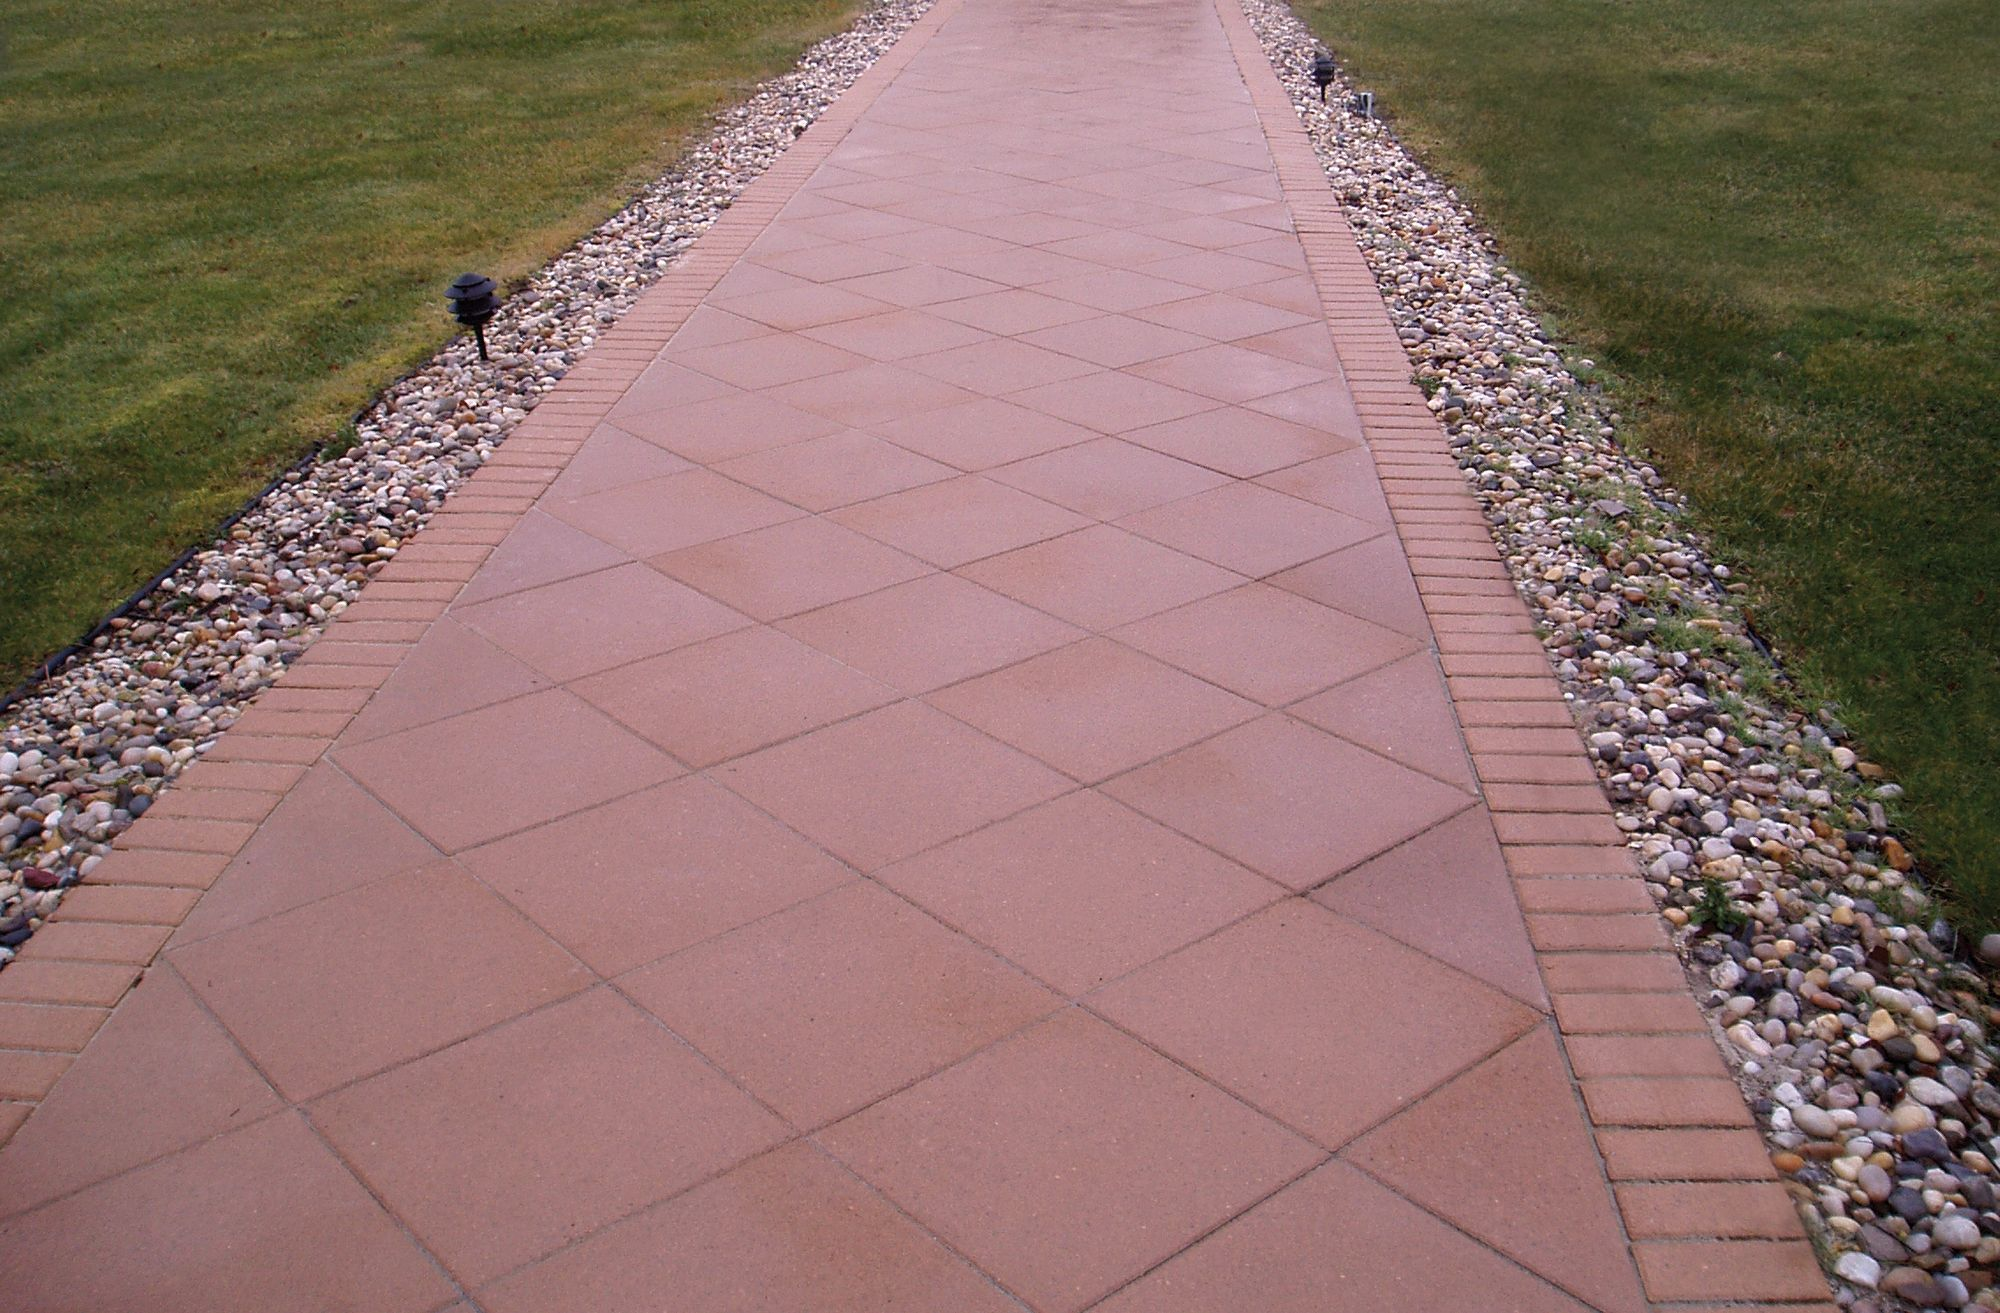 heritage | nicolock interlocking paving stones and retaining walls